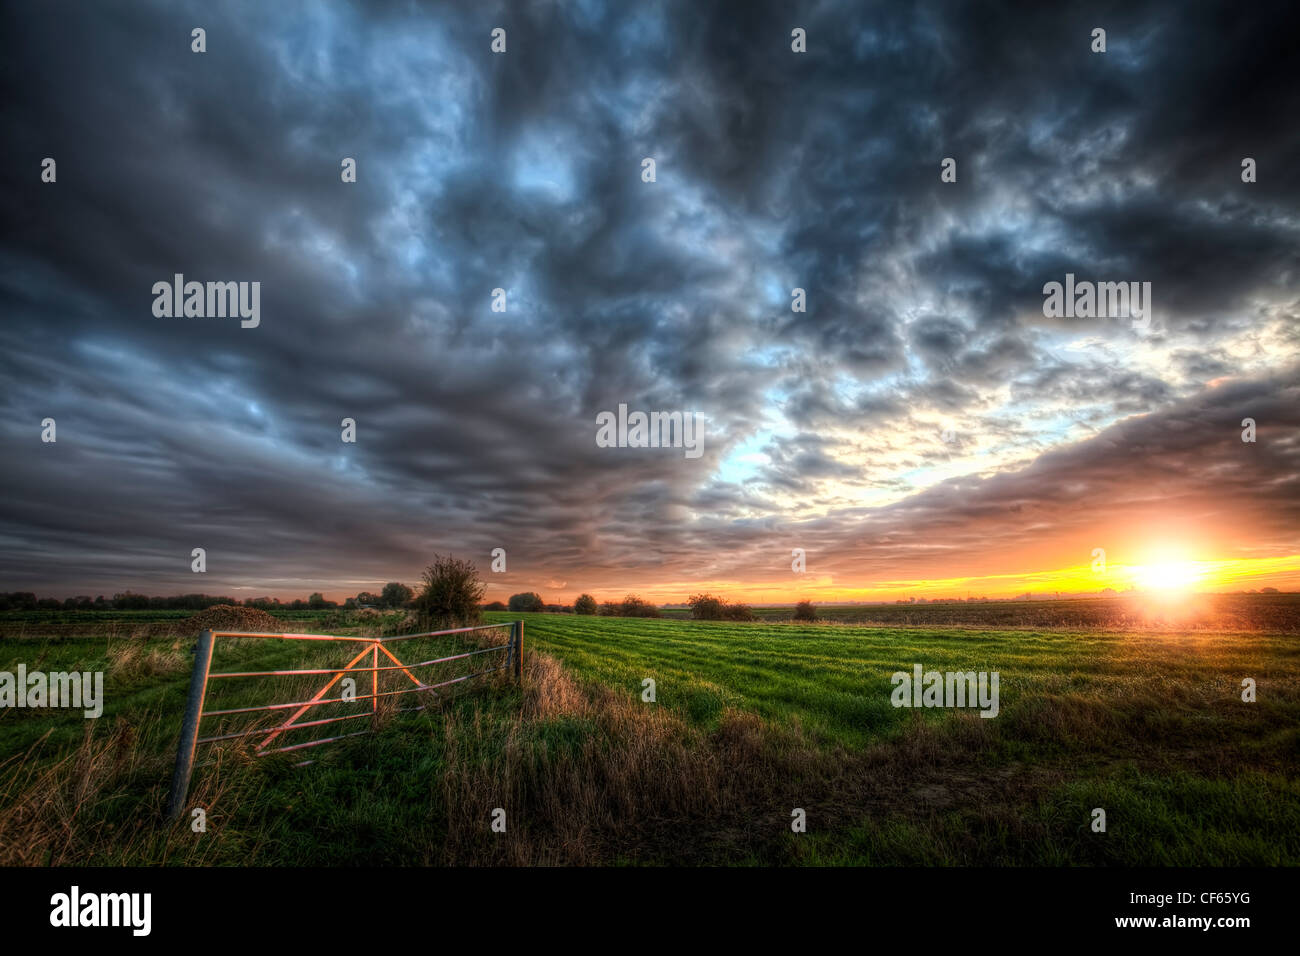 Sunrise over a field in the Cambridgeshire Fens. - Stock Image